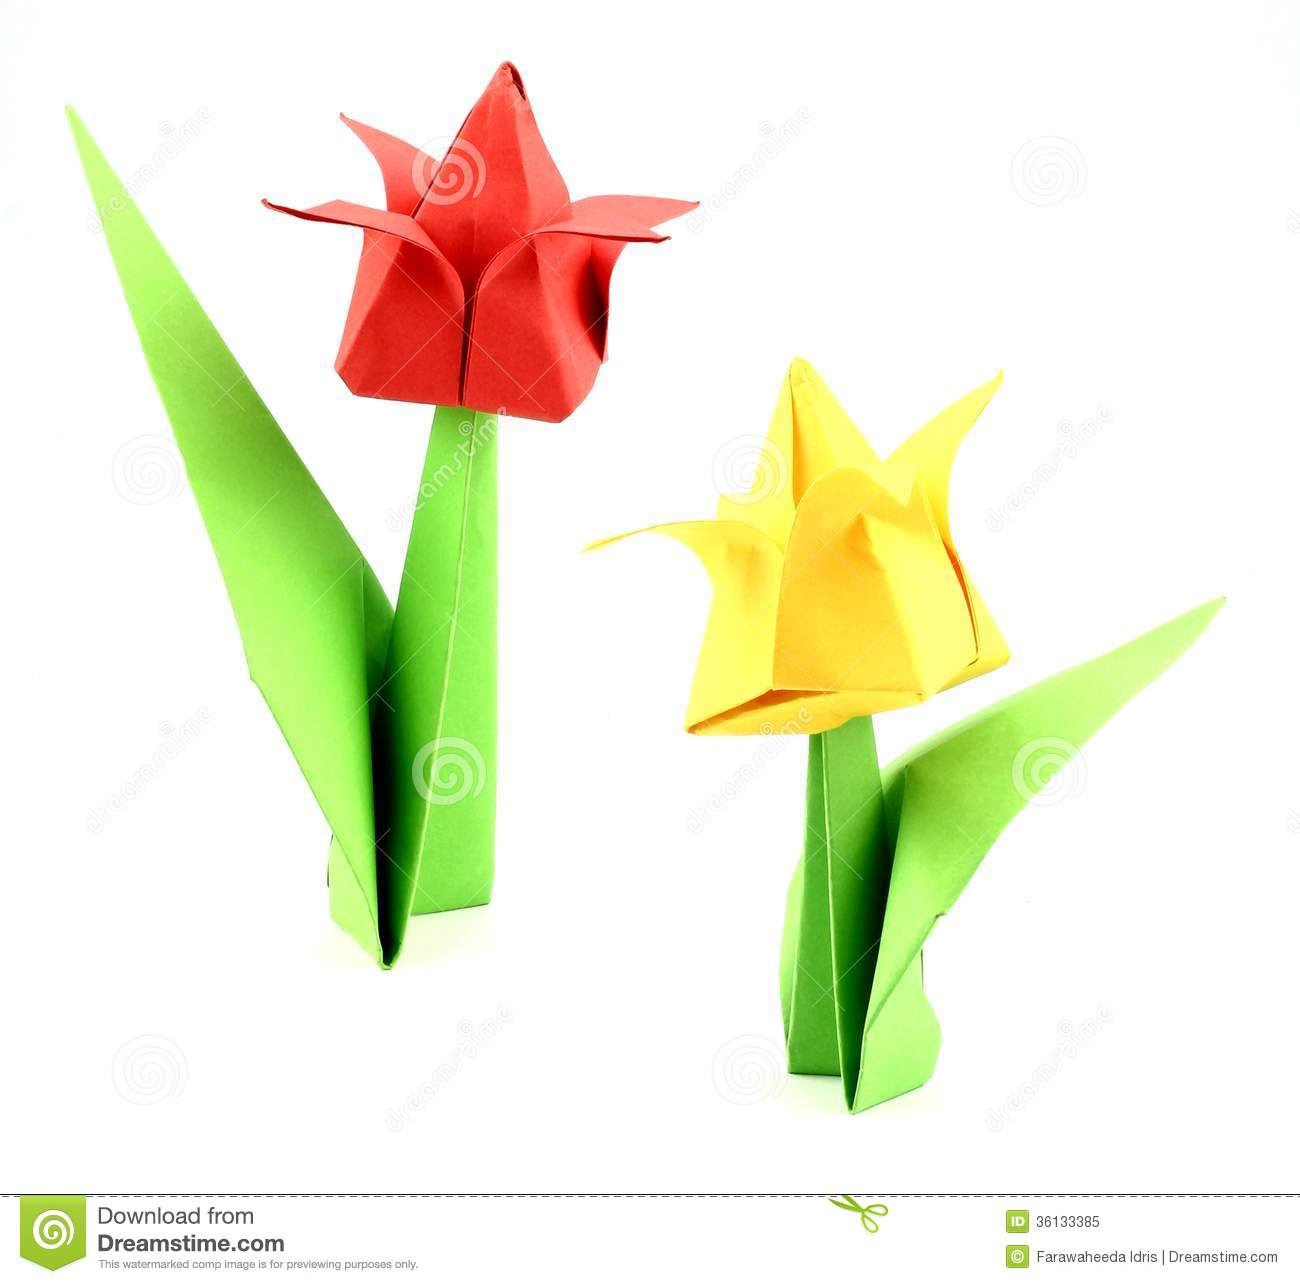 Origami tulip flower stock image image of images picture 36133385 download comp mightylinksfo